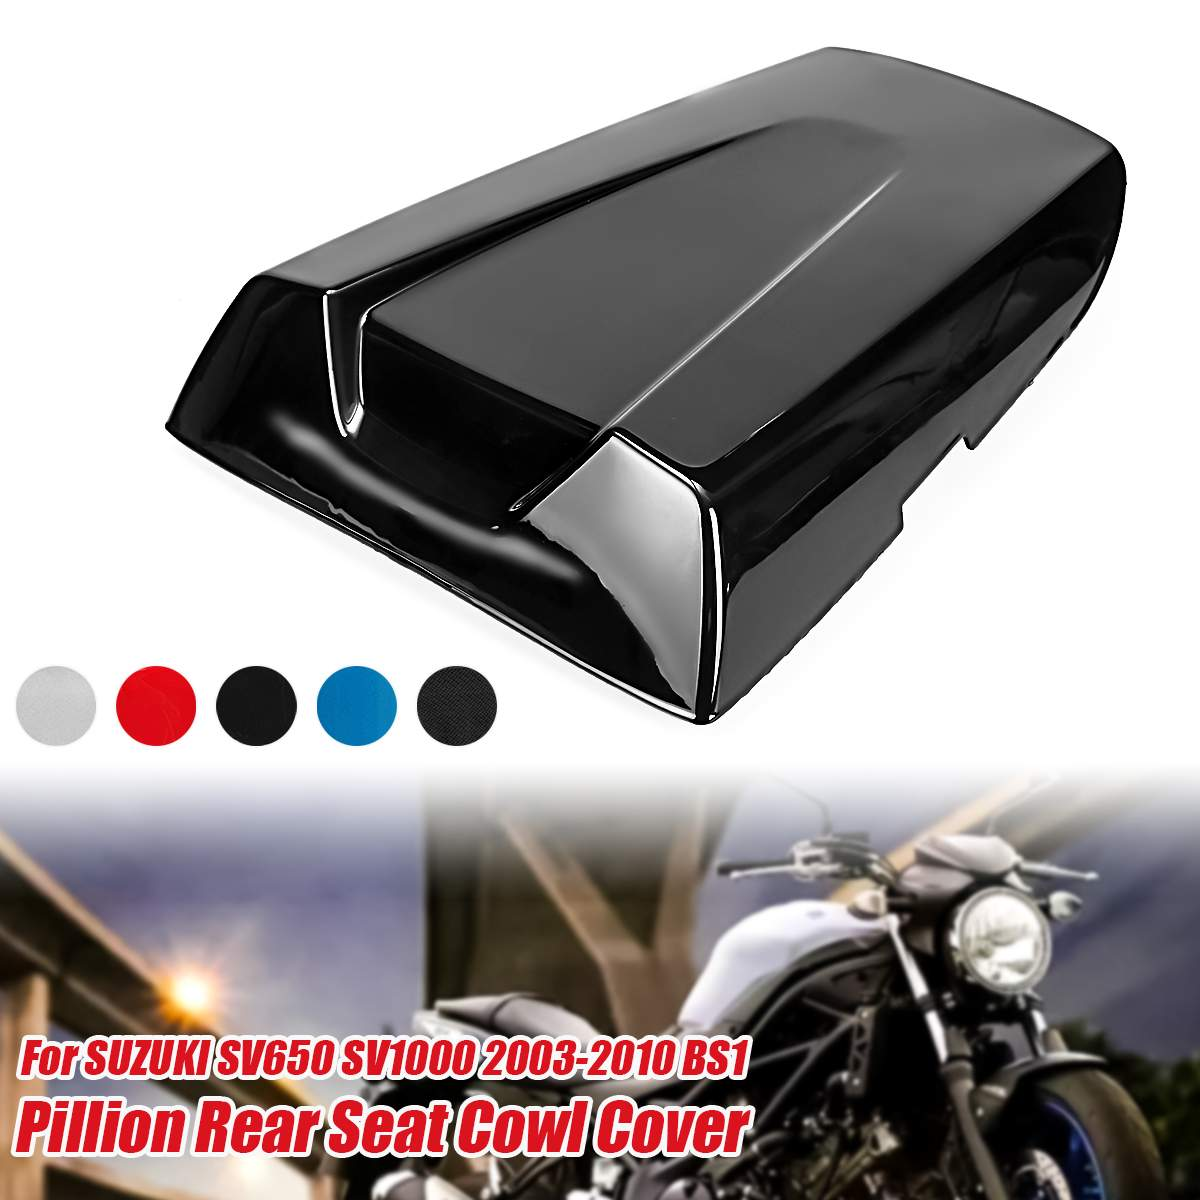 1x Motorcycle Pit Dirt Bike Rear Passenger Seat Cover Guard <font><b>Fairing</b></font> Cowl Cushion For <font><b>Suzuki</b></font> SV650 <font><b>SV1000</b></font> 2003-2010 M511-S010-Set image